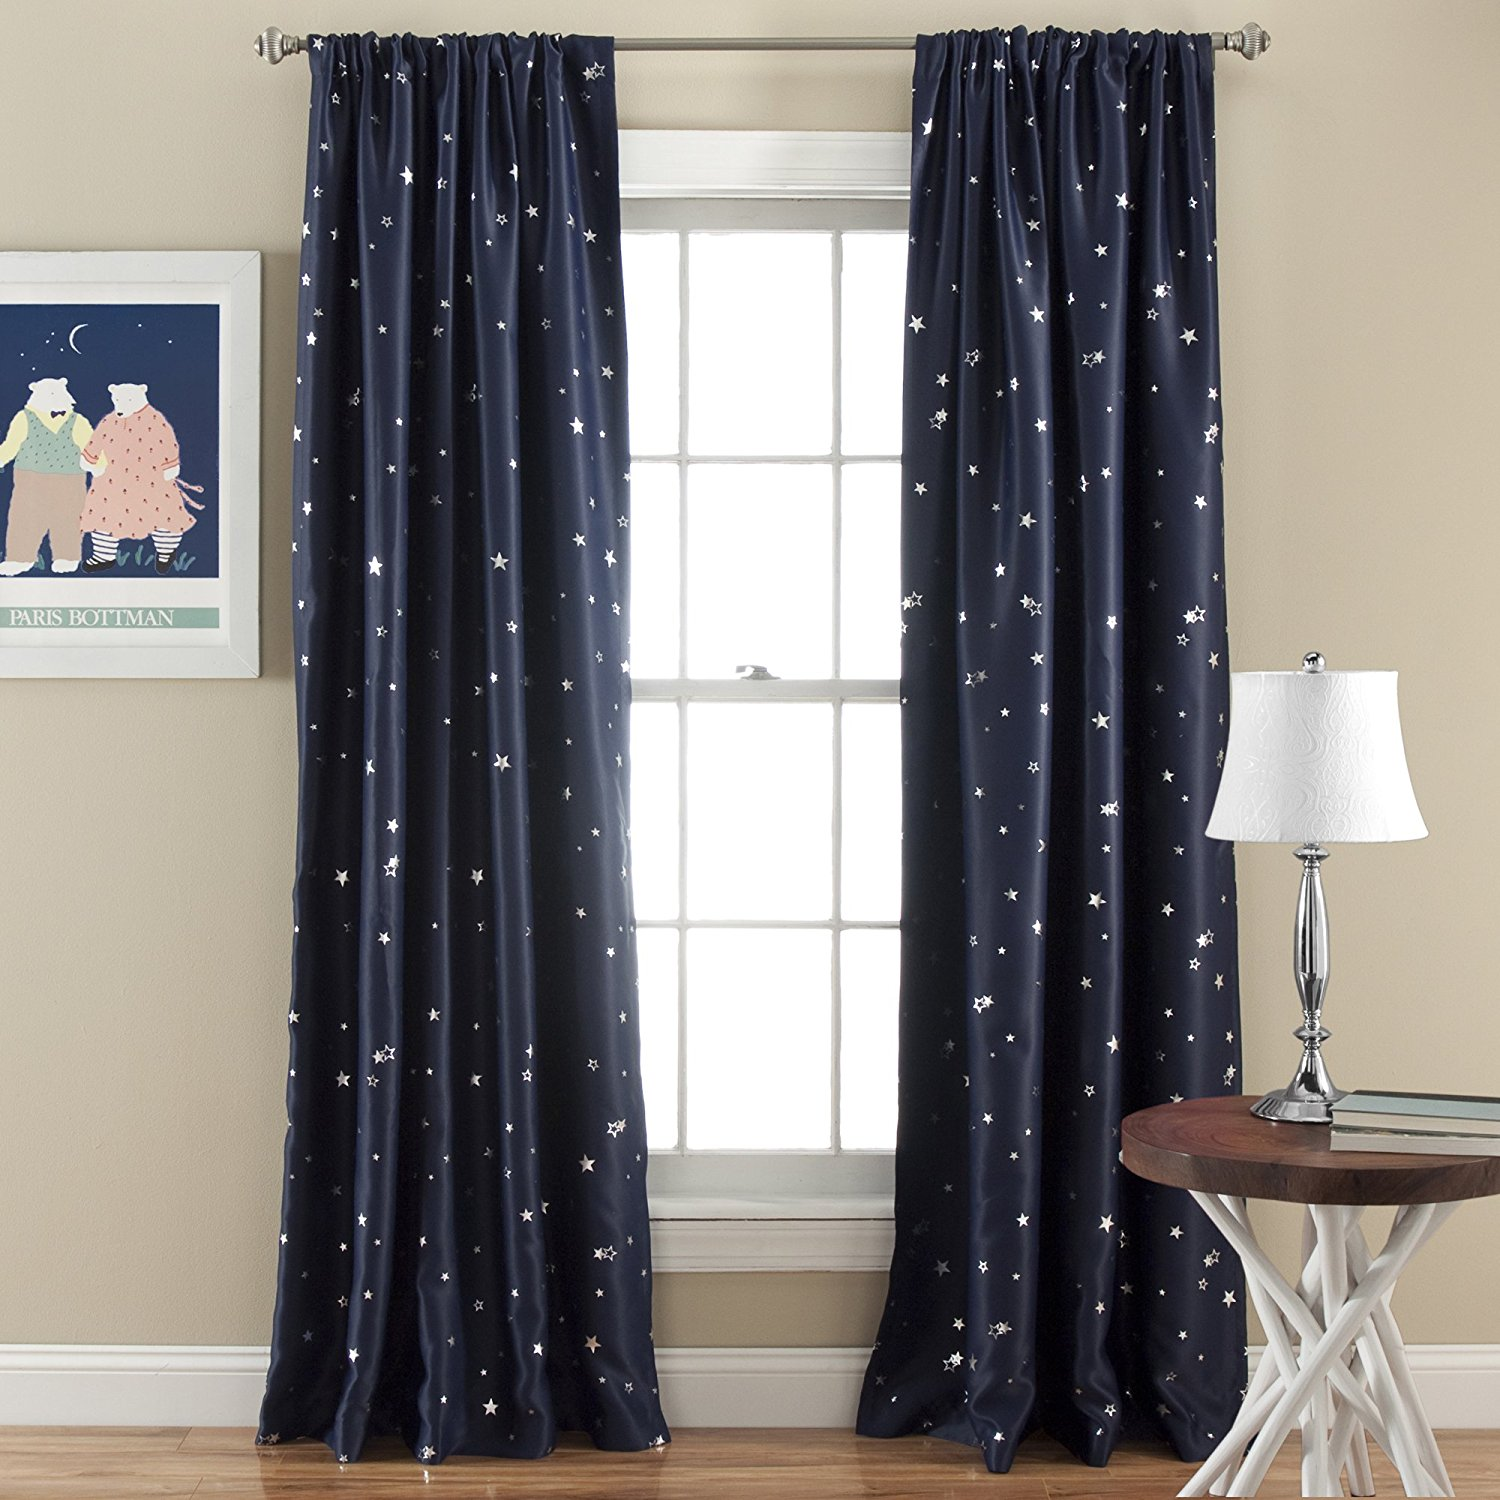 Patterned Curtains For Living Room Online Get Cheap Star Pattern Curtains Aliexpresscom Alibaba Group